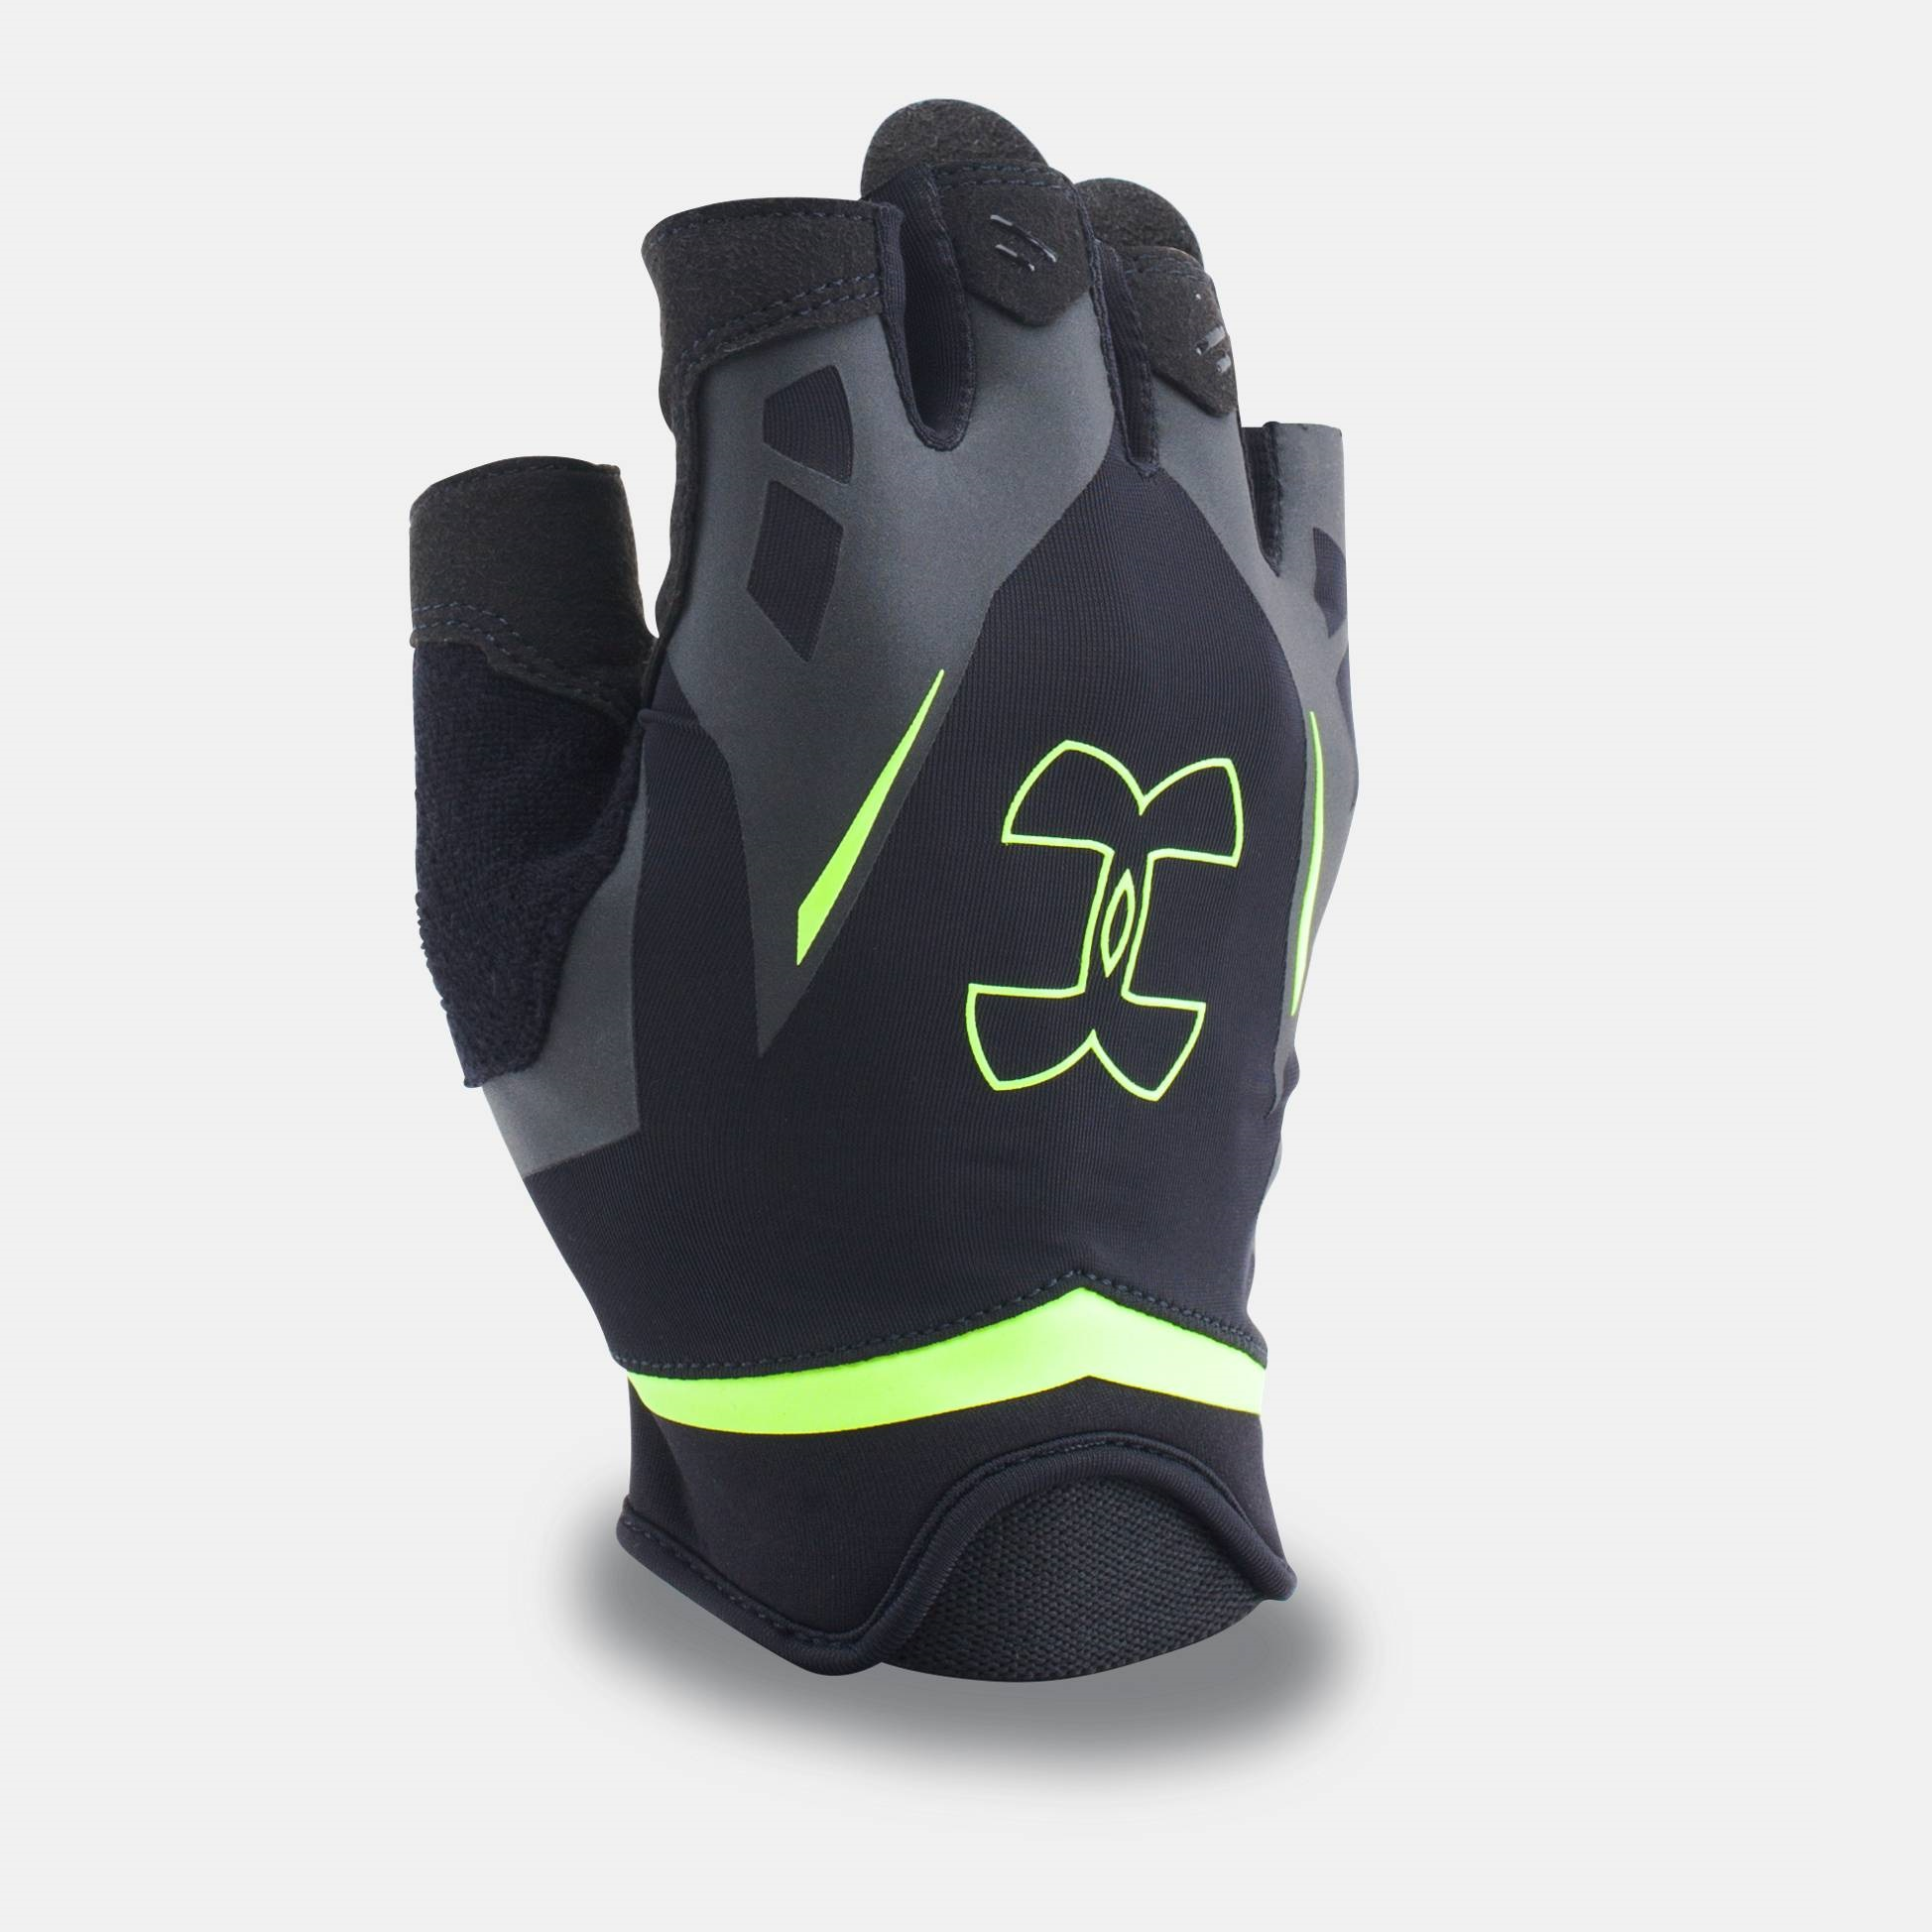 Accessories   Under Armour Flux Gloves | Fitness